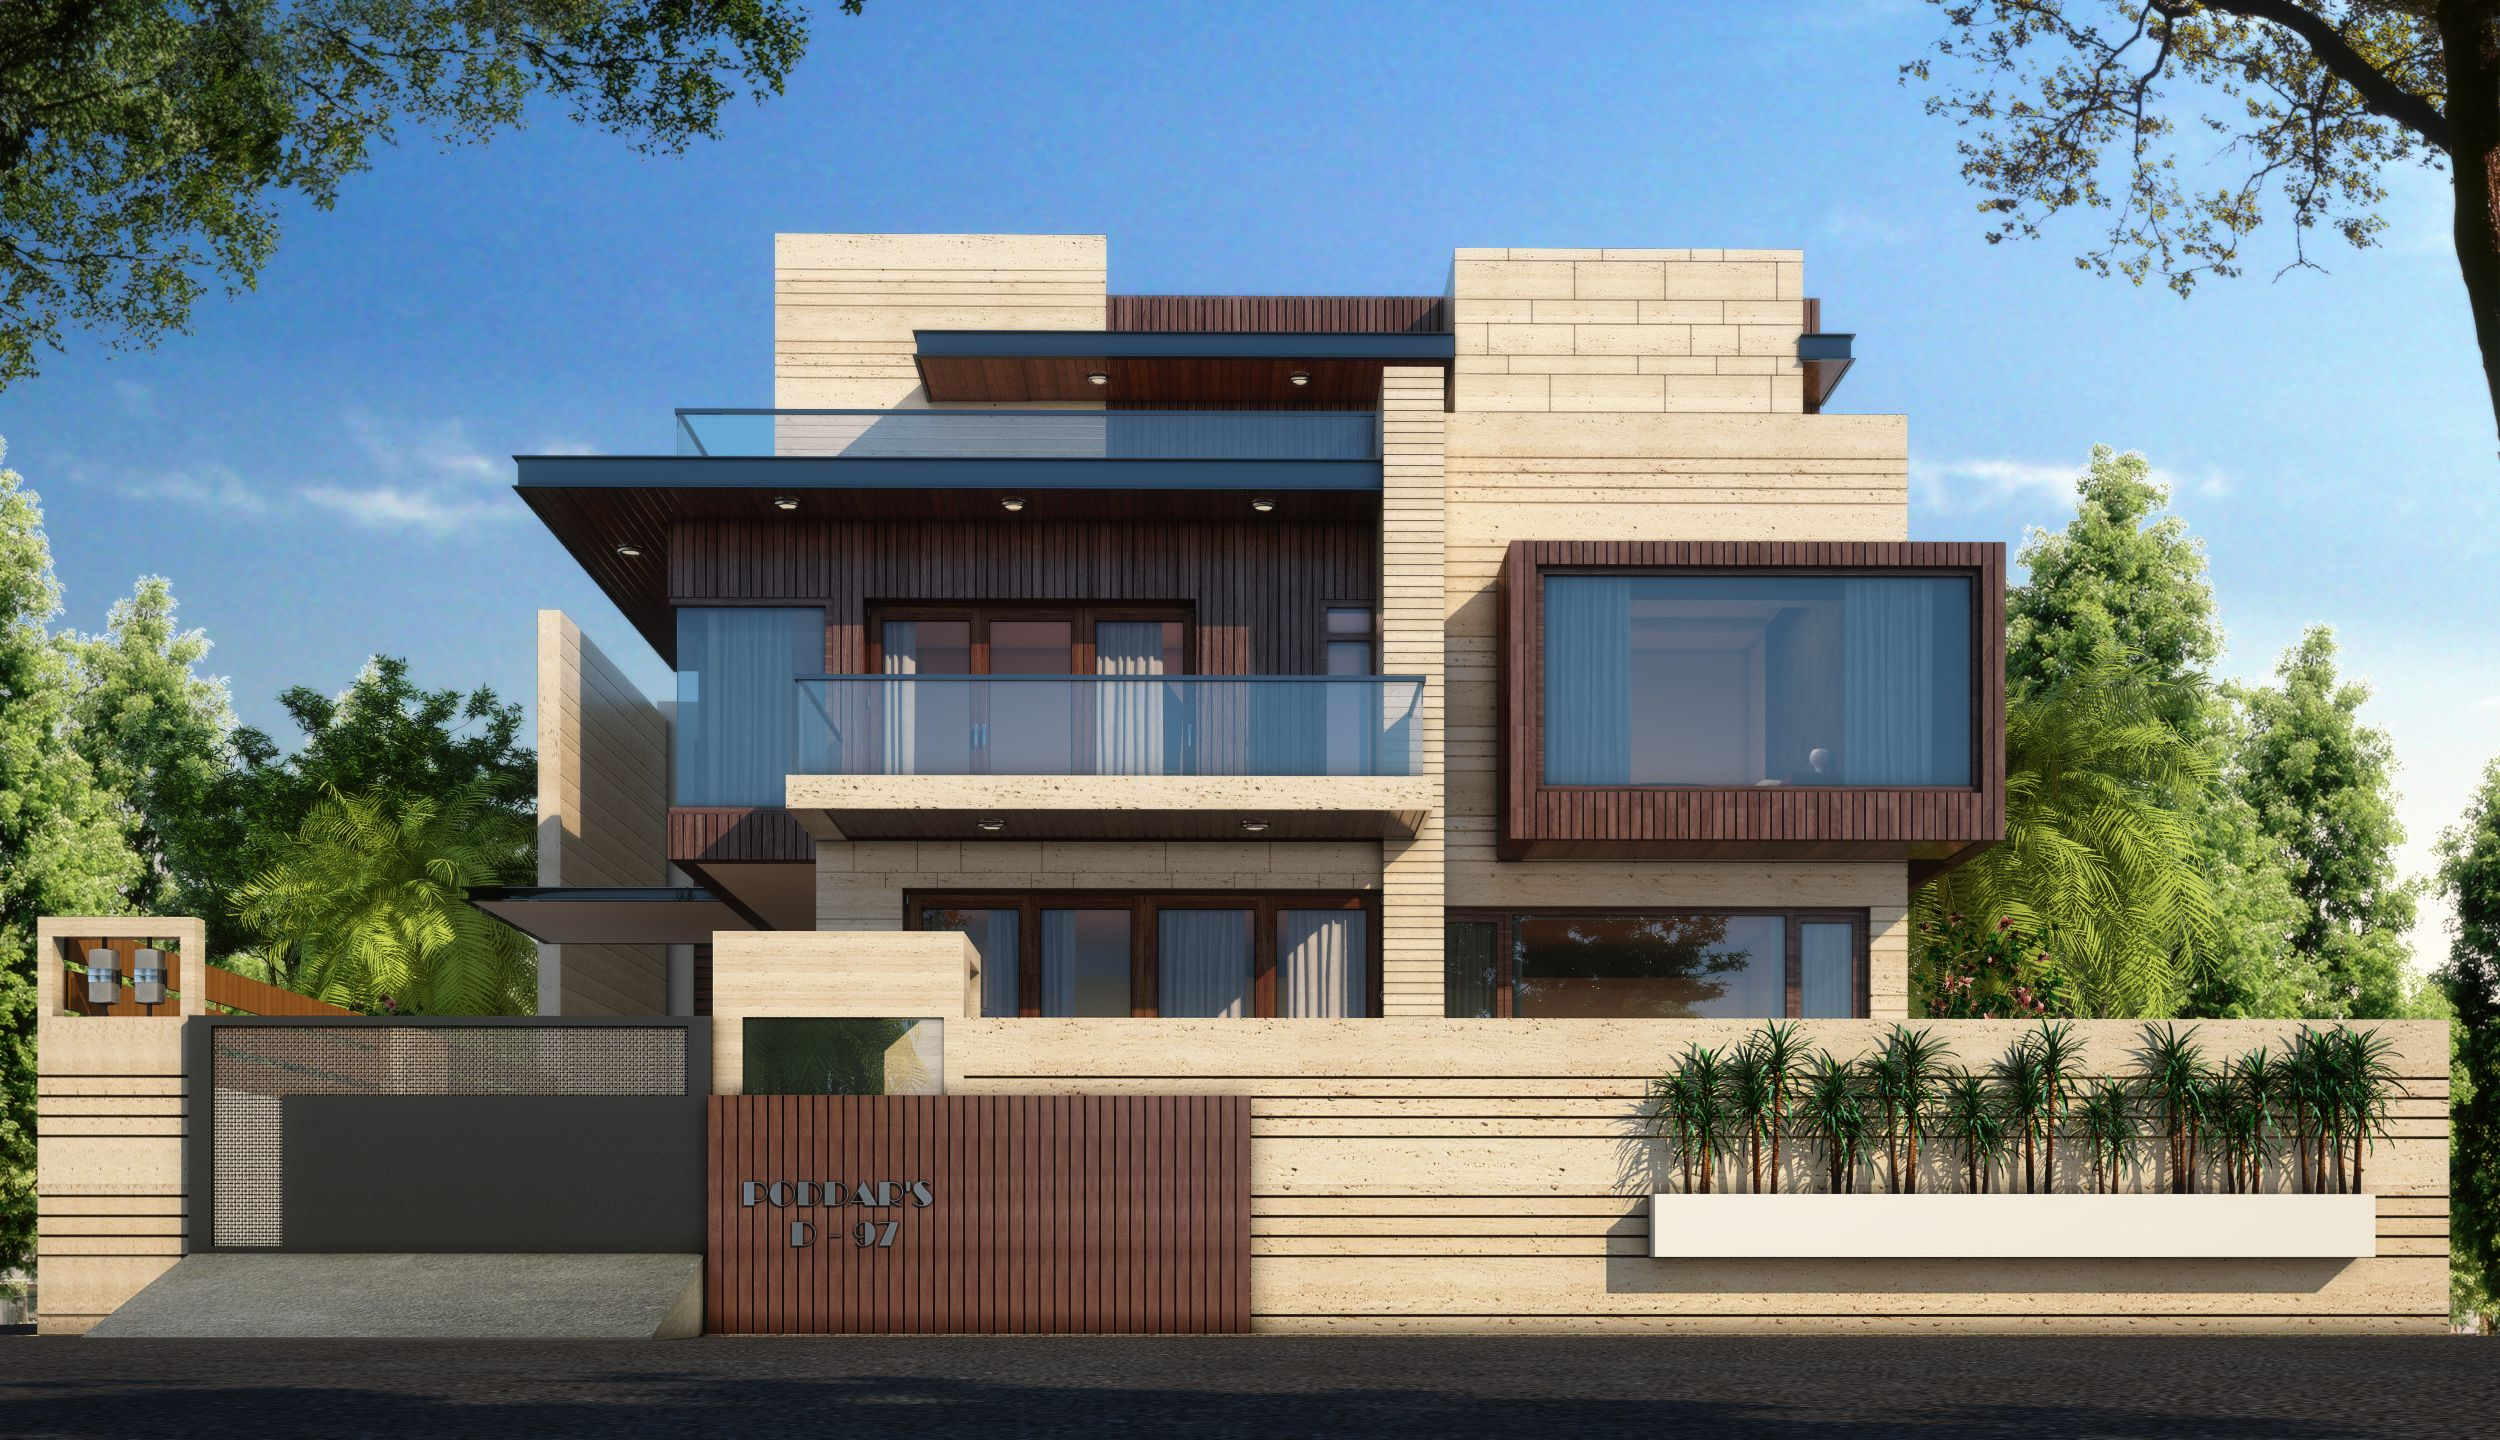 Boundary Wall FOR HOUSING Google Search Boundary Wall Design